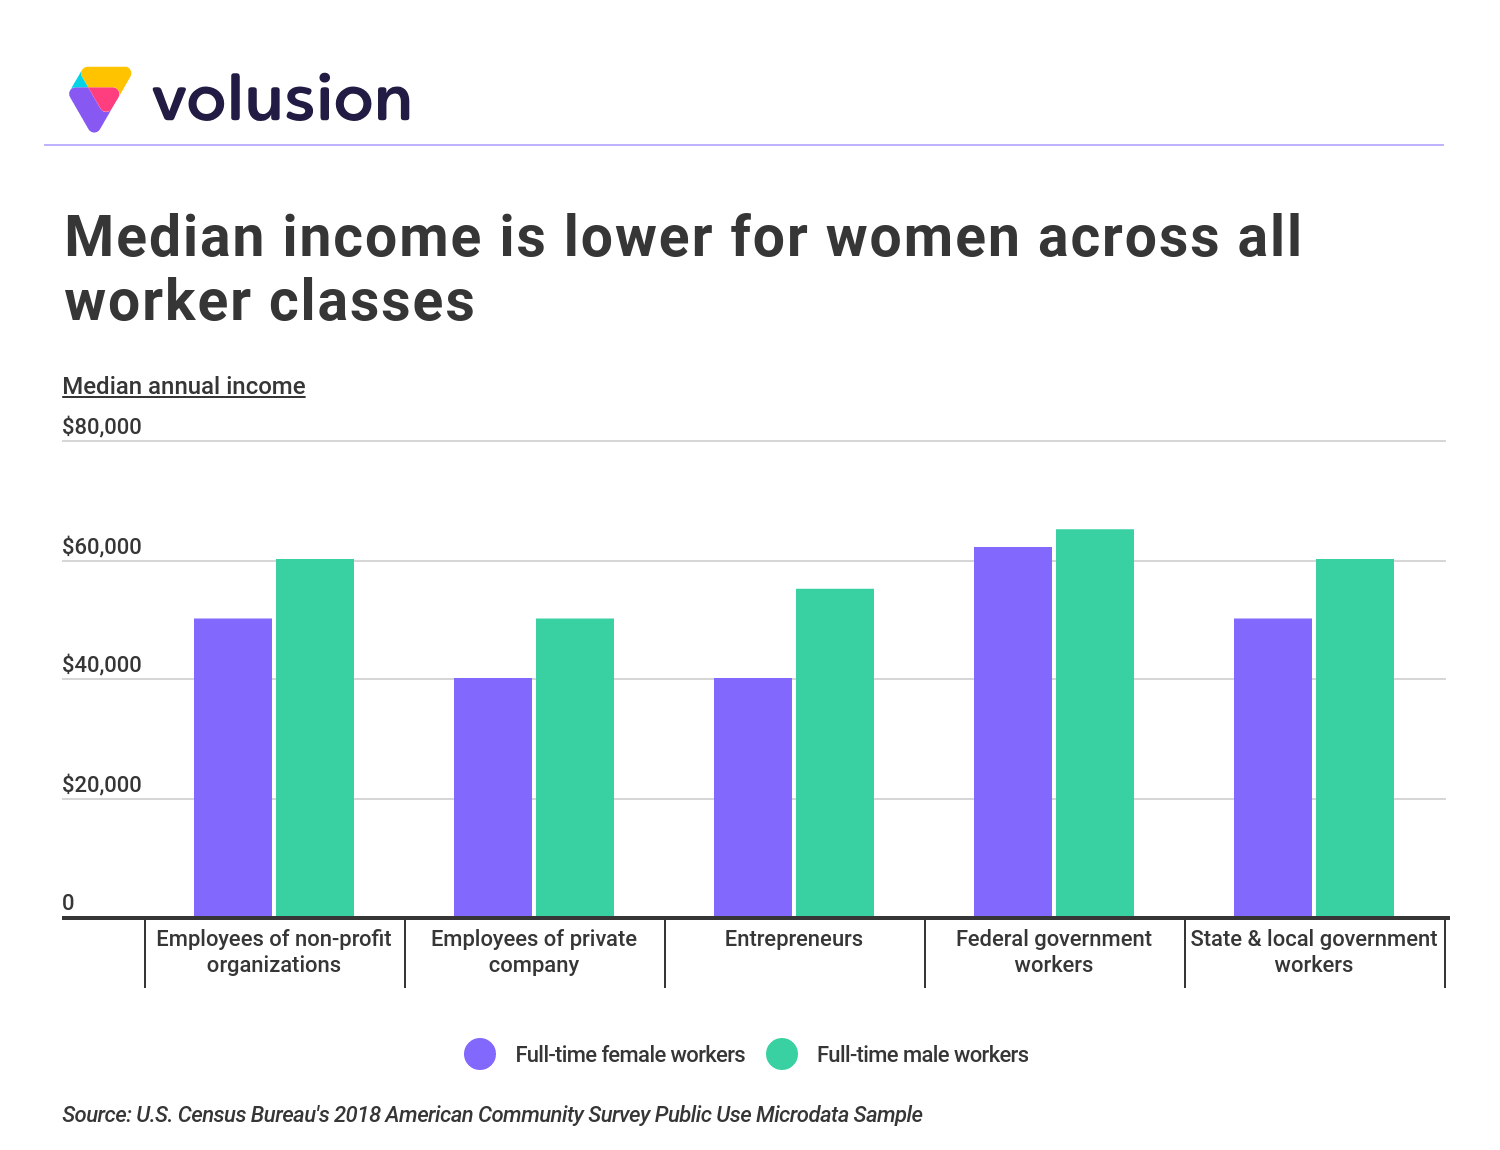 Chart demonstrating that median income is lower for women across all worker classes.